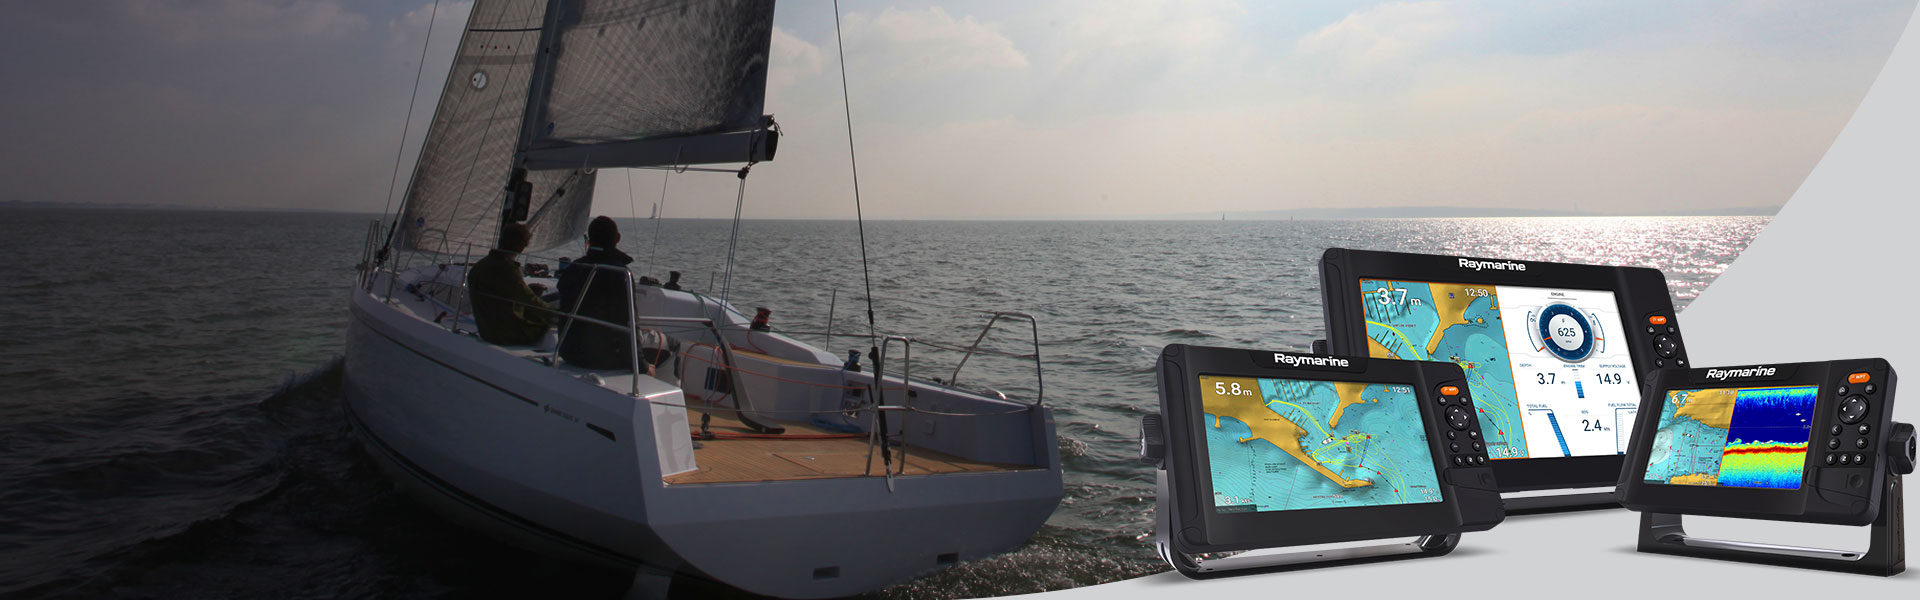 NEW - Element S Navigation Display | Raymarine - A Brand by FLIR